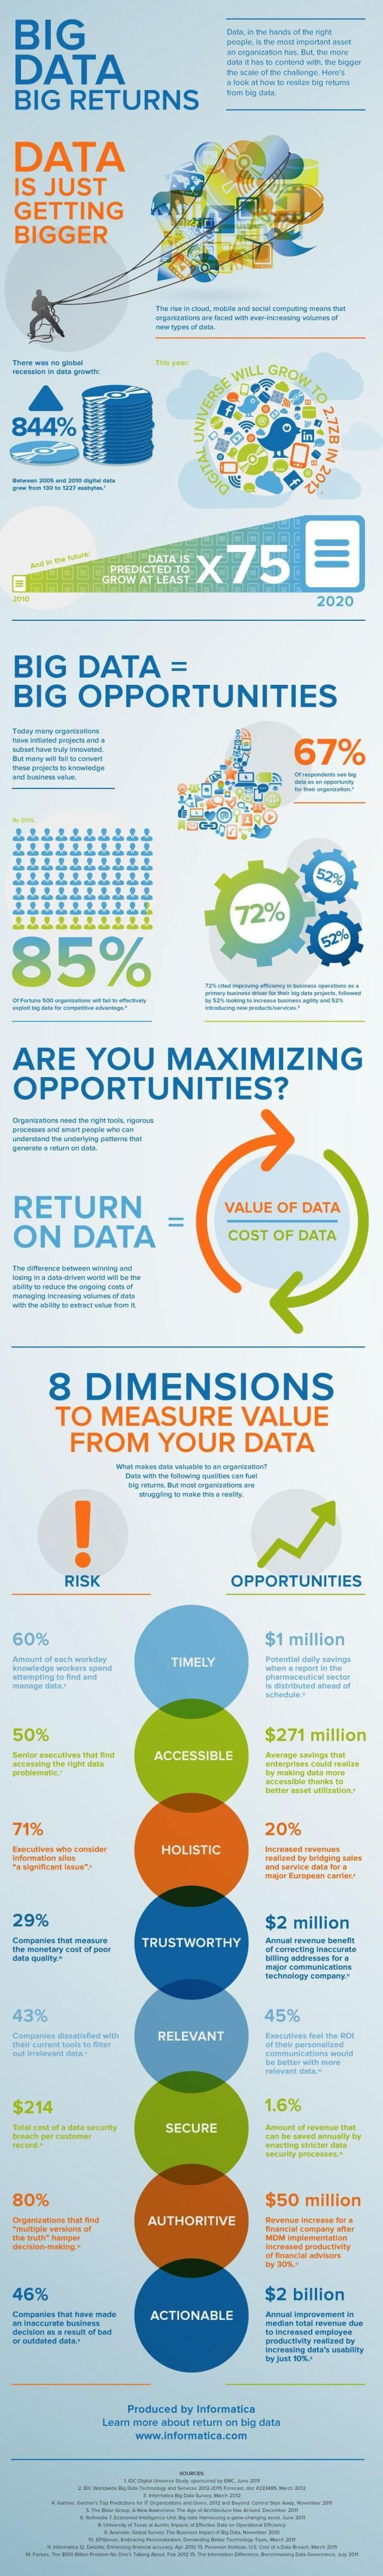 What is Big Data? What Are the Benefits of Big Data? – Marketing Technology